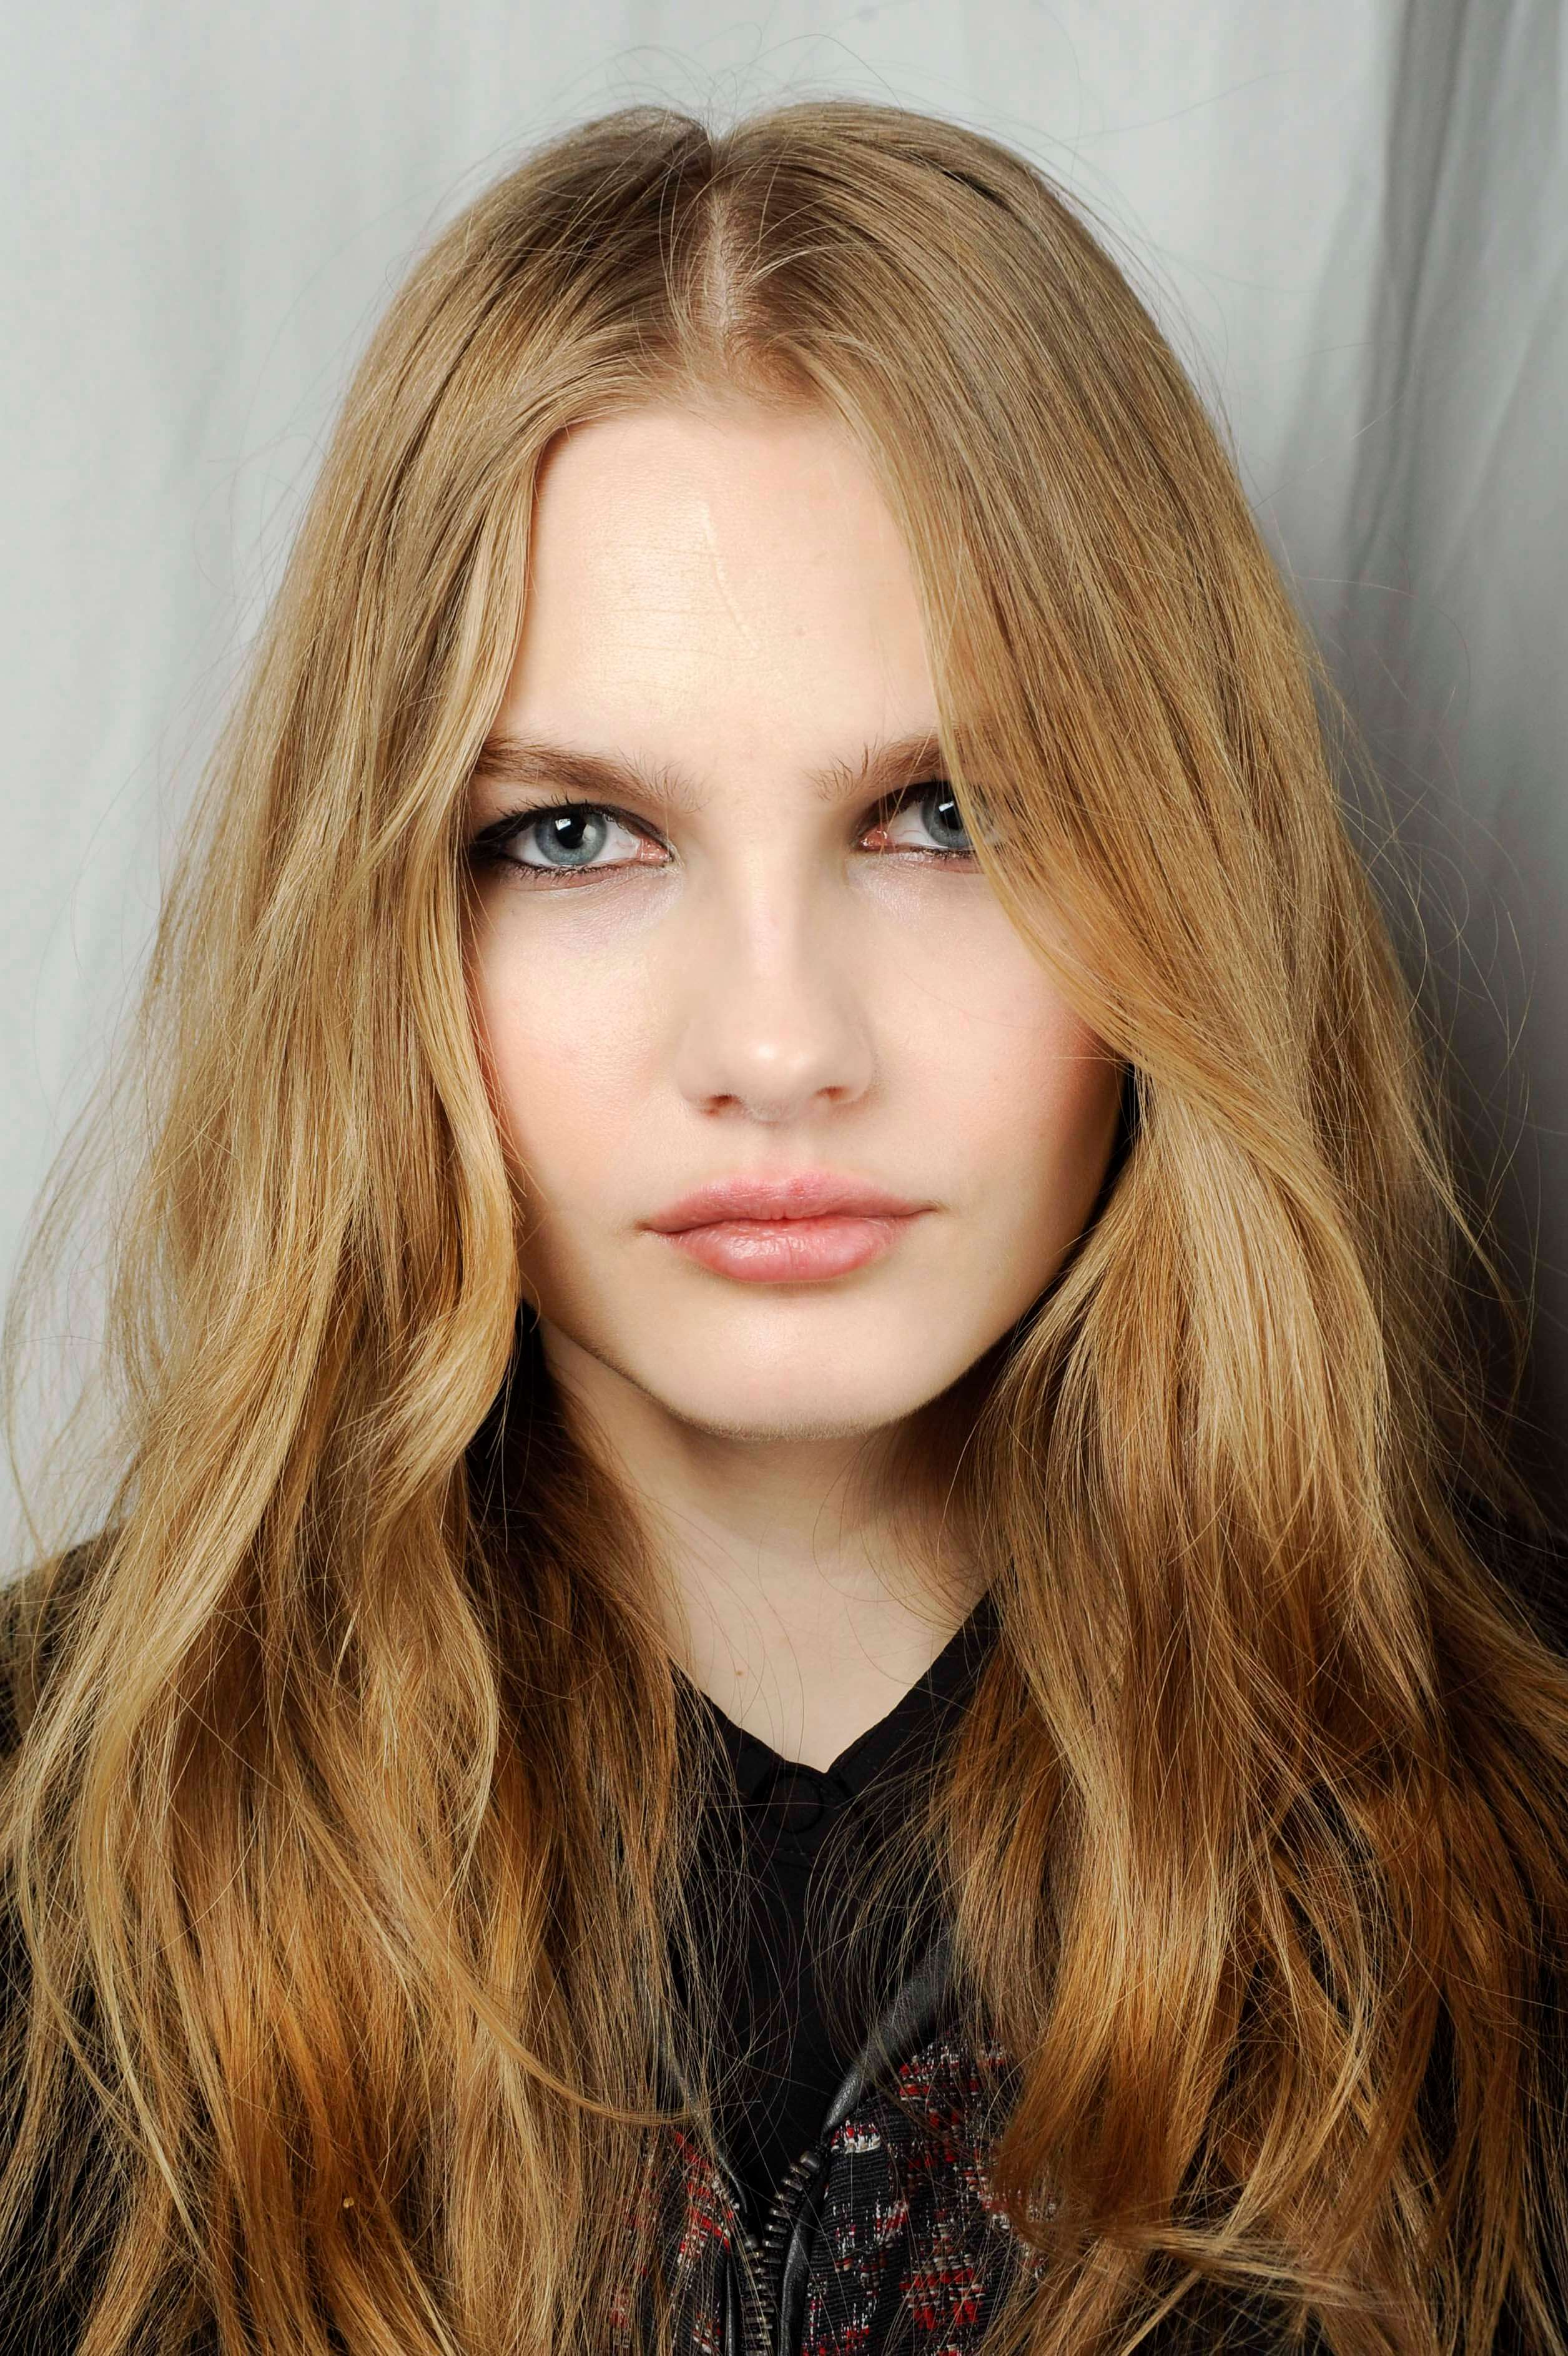 best long haircuts for square faces best haircuts for square faces a guide 3392 | strawberry blonde hair long graduated layers tory burch 706 fw15